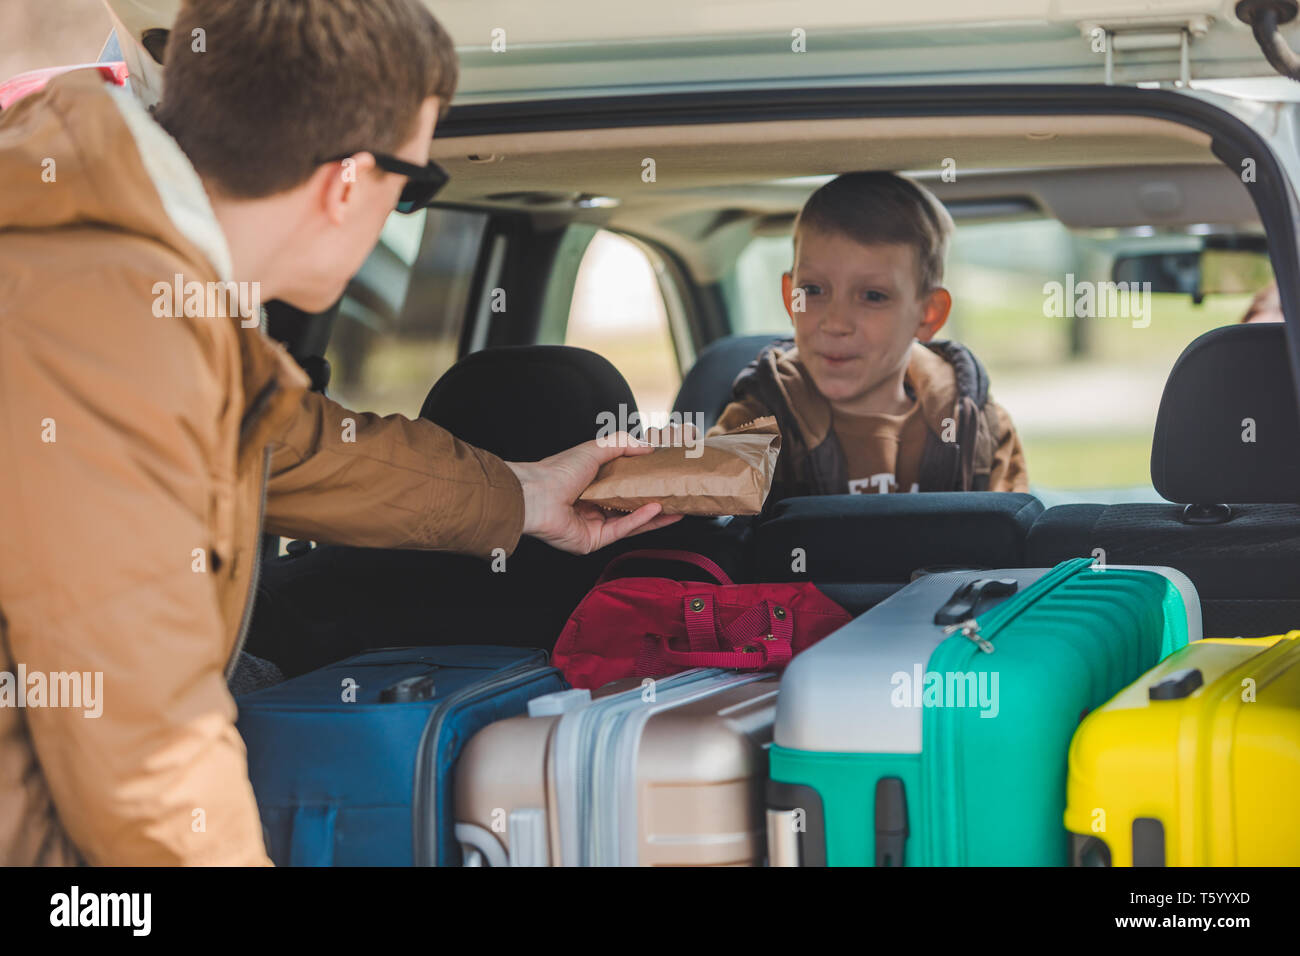 father with son packing bags to car trunk. car travel concept. adventure time - Stock Image